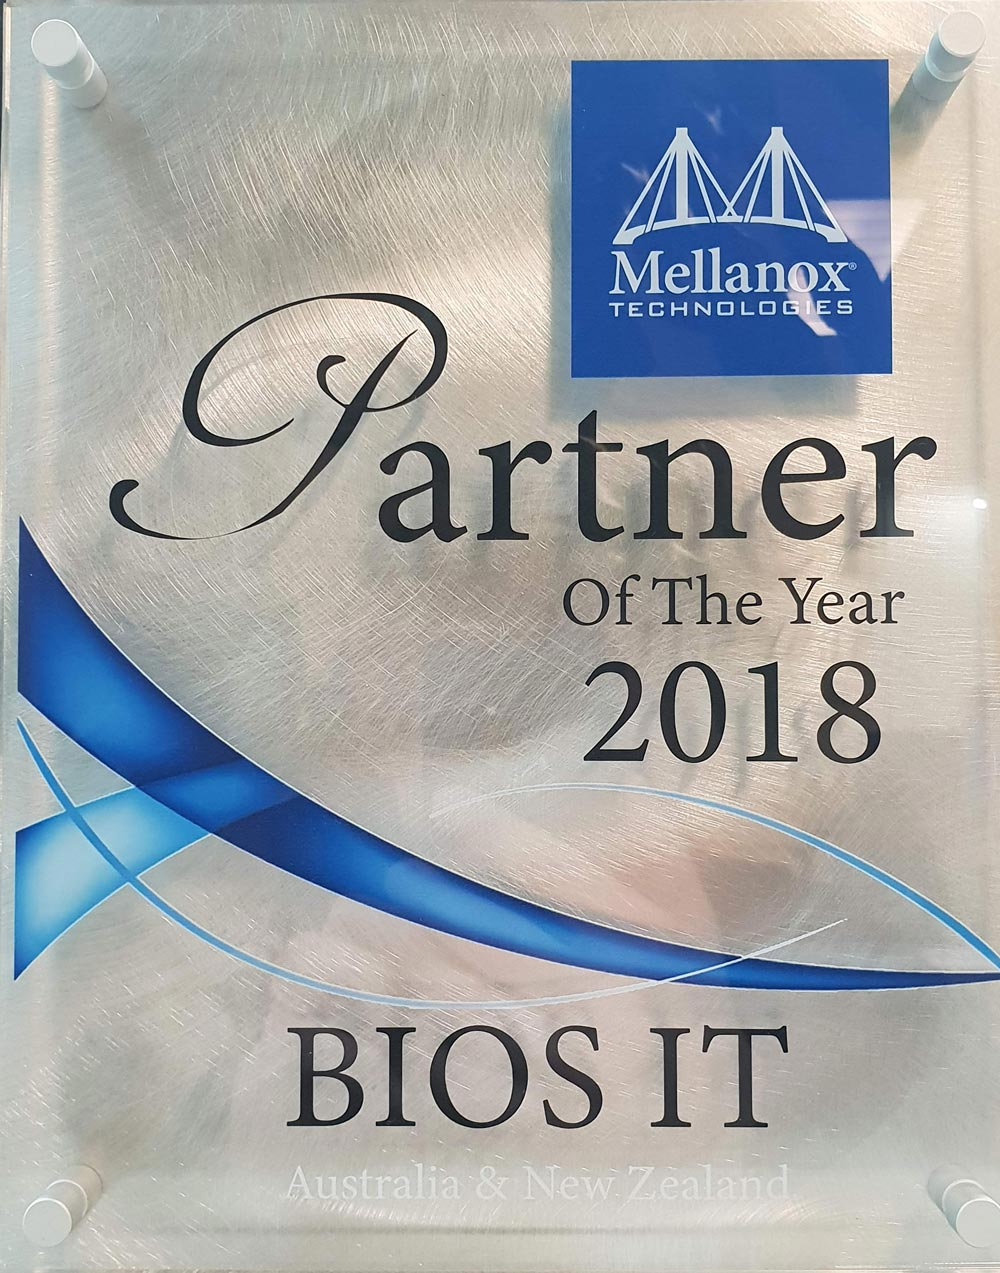 mellanox partner of the year award